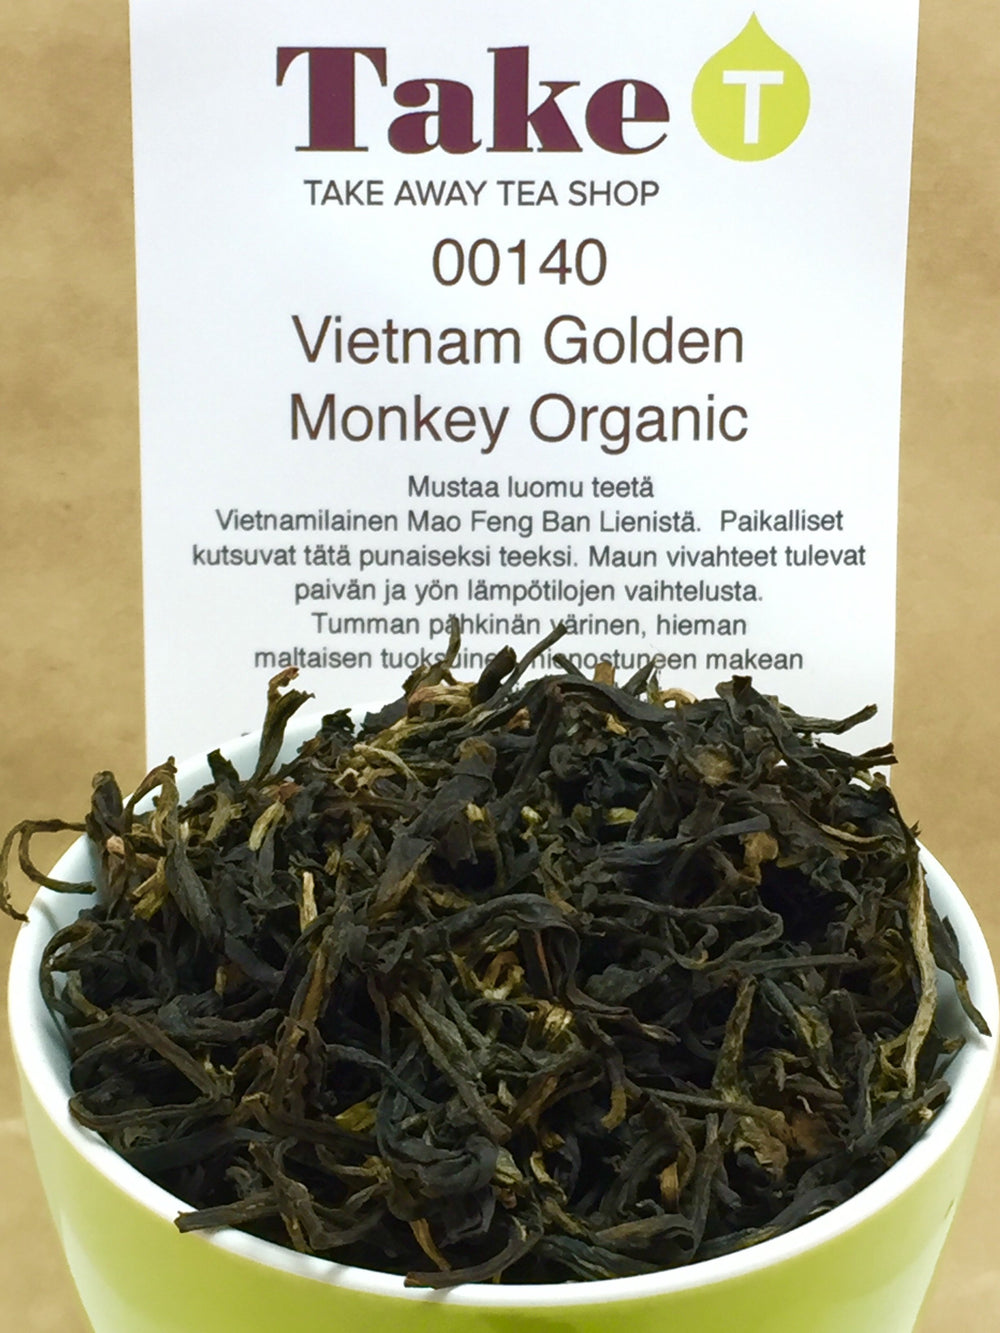 Vietnam Golden Monkey Organic